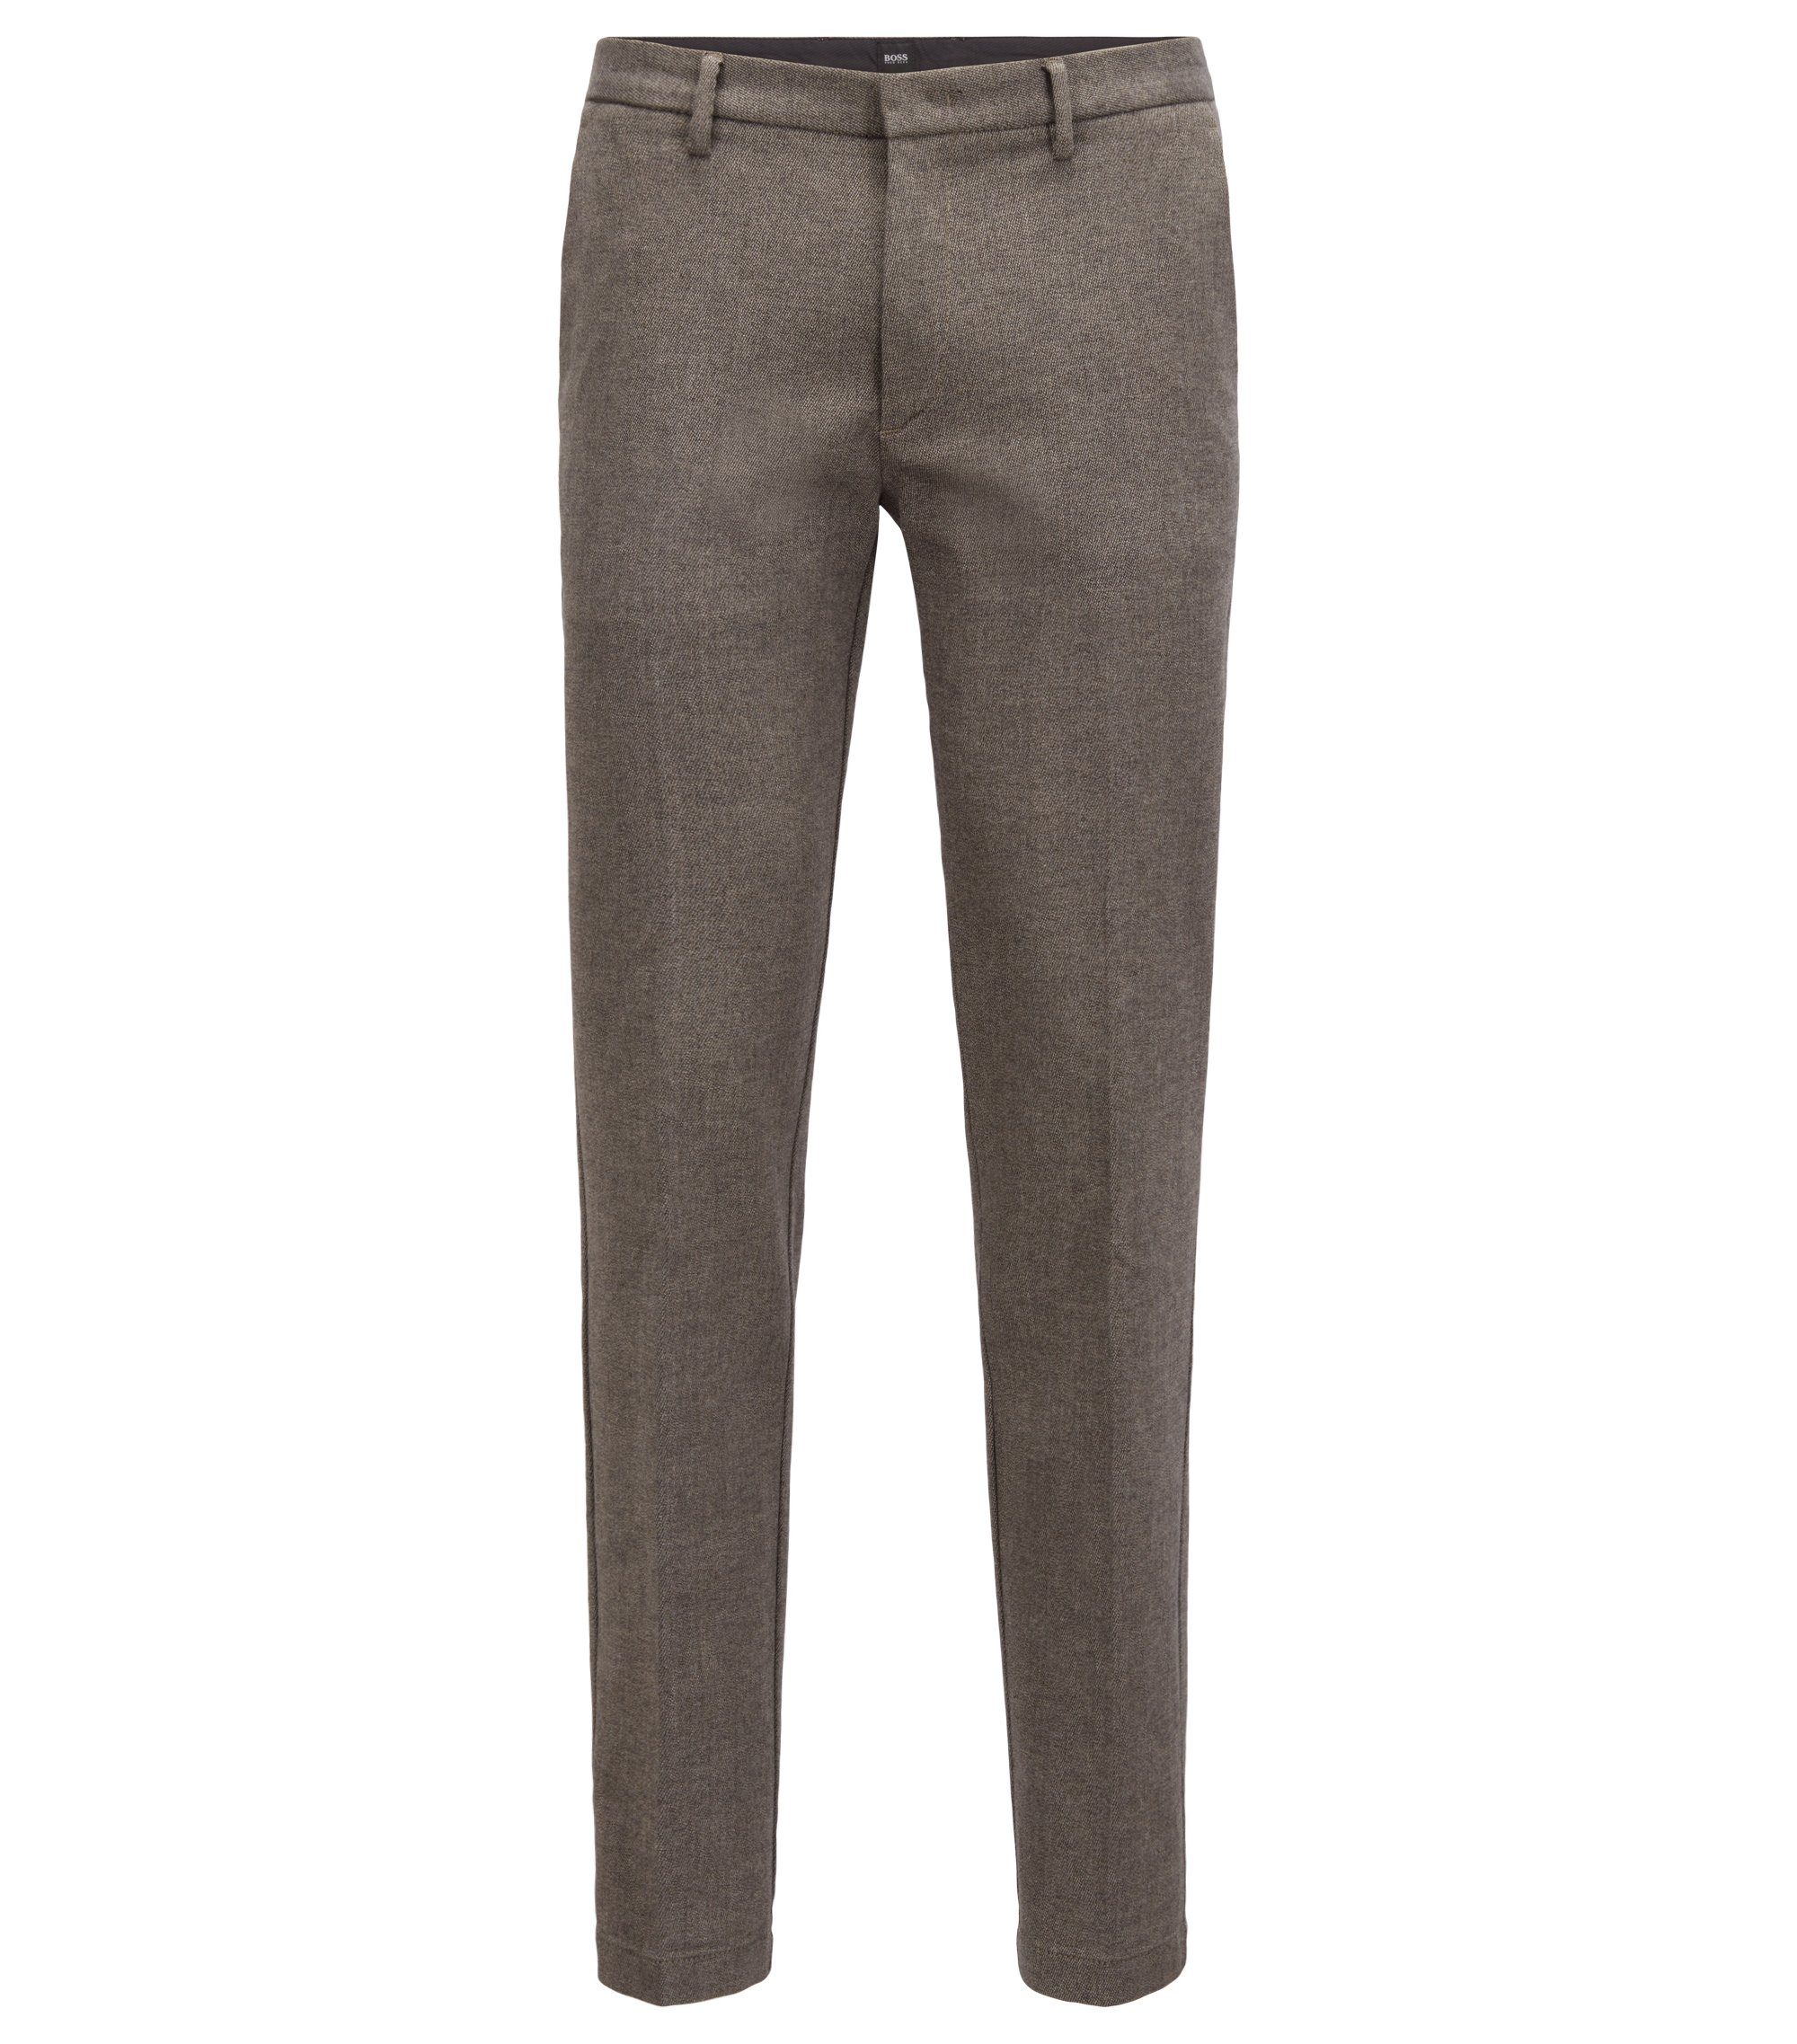 Slim-fit chinos in stretch mouliné cotton twill, Open Green